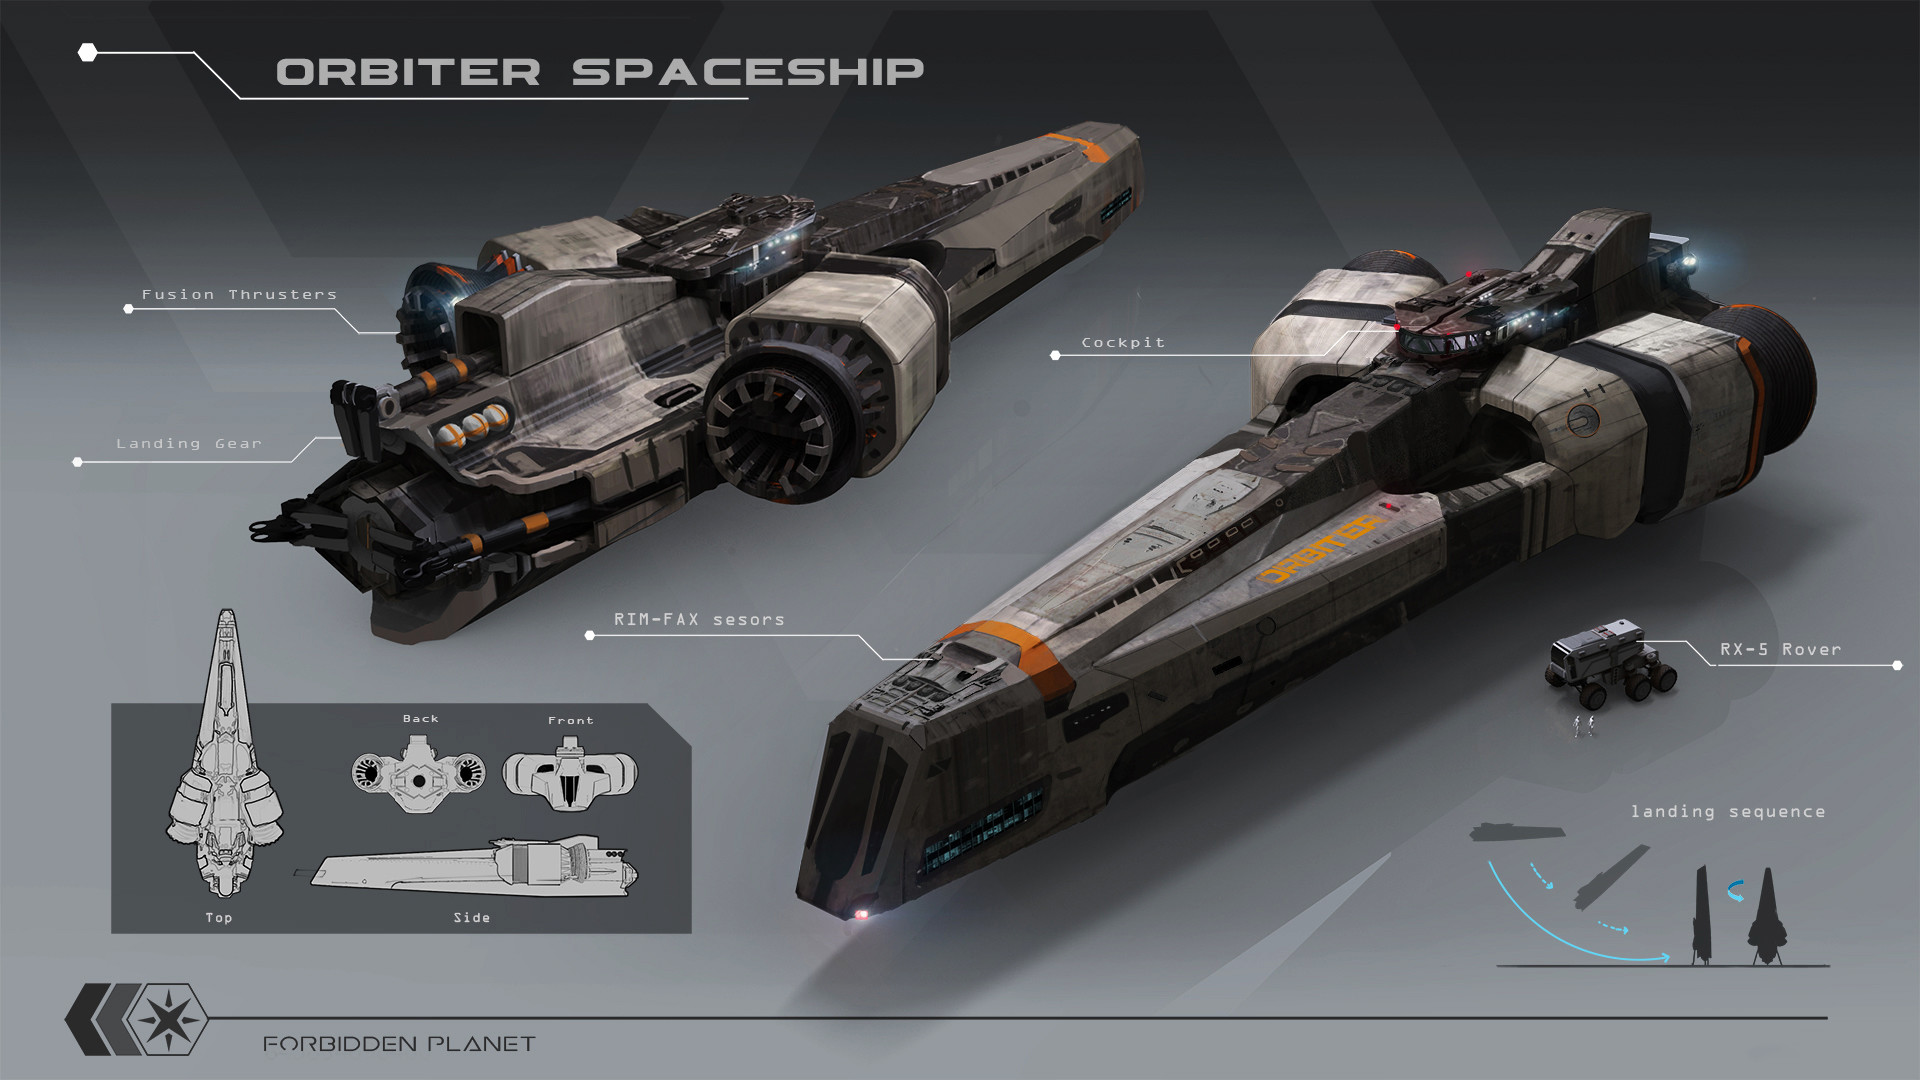 Artstation - Forbidden Planet; Orbiter Spaceship Seif Ragab